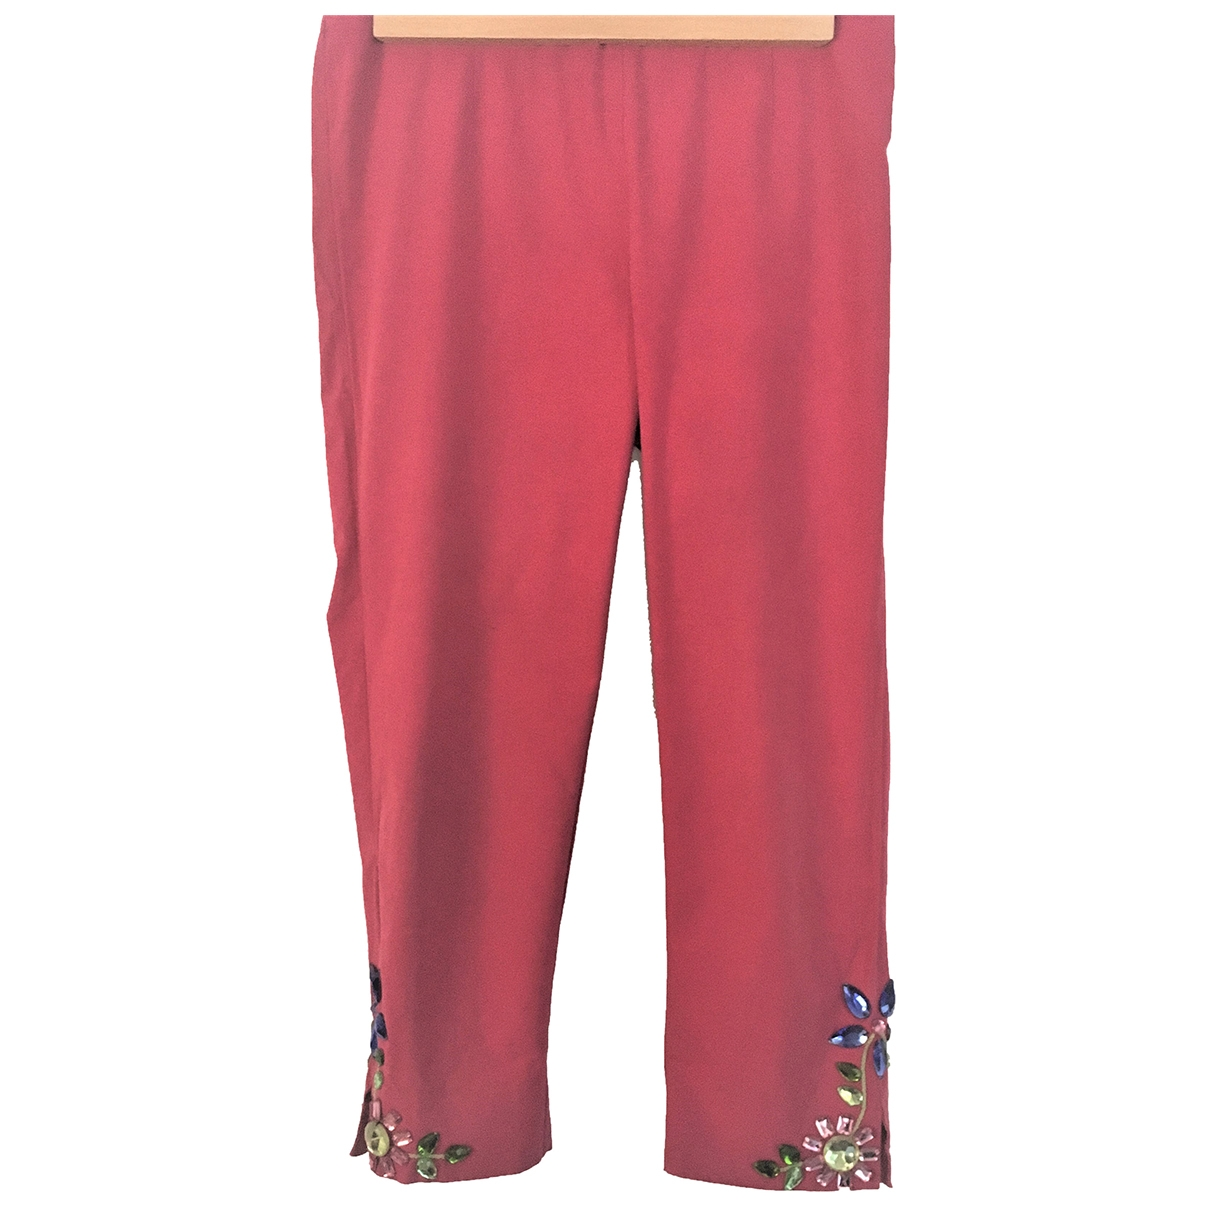 Moschino Cheap And Chic \N Pink Cotton Trousers for Women 44 IT